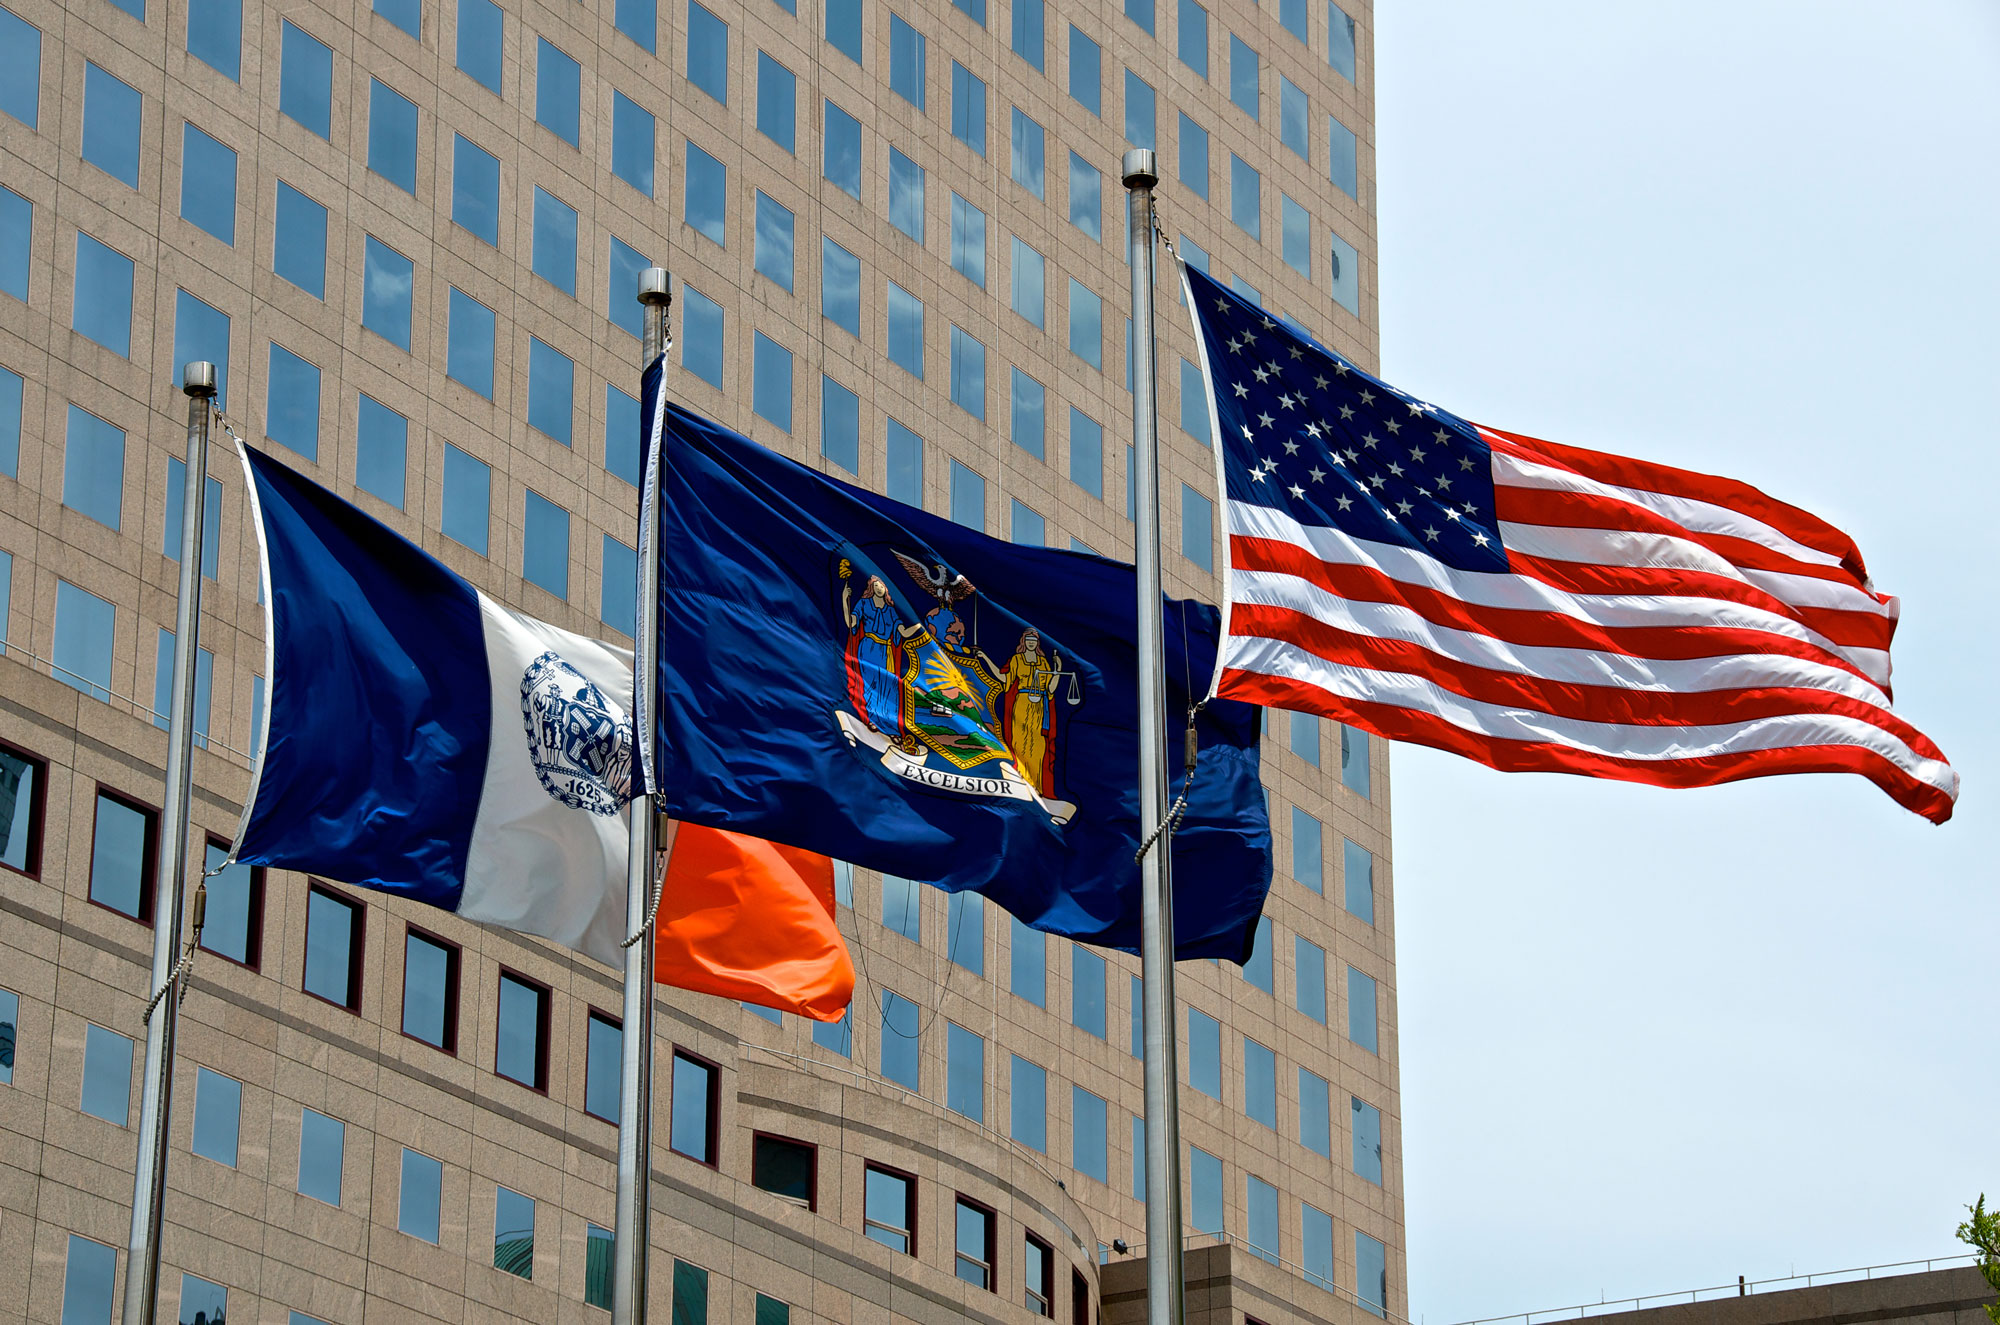 USA-NY-State-NYC-Flags